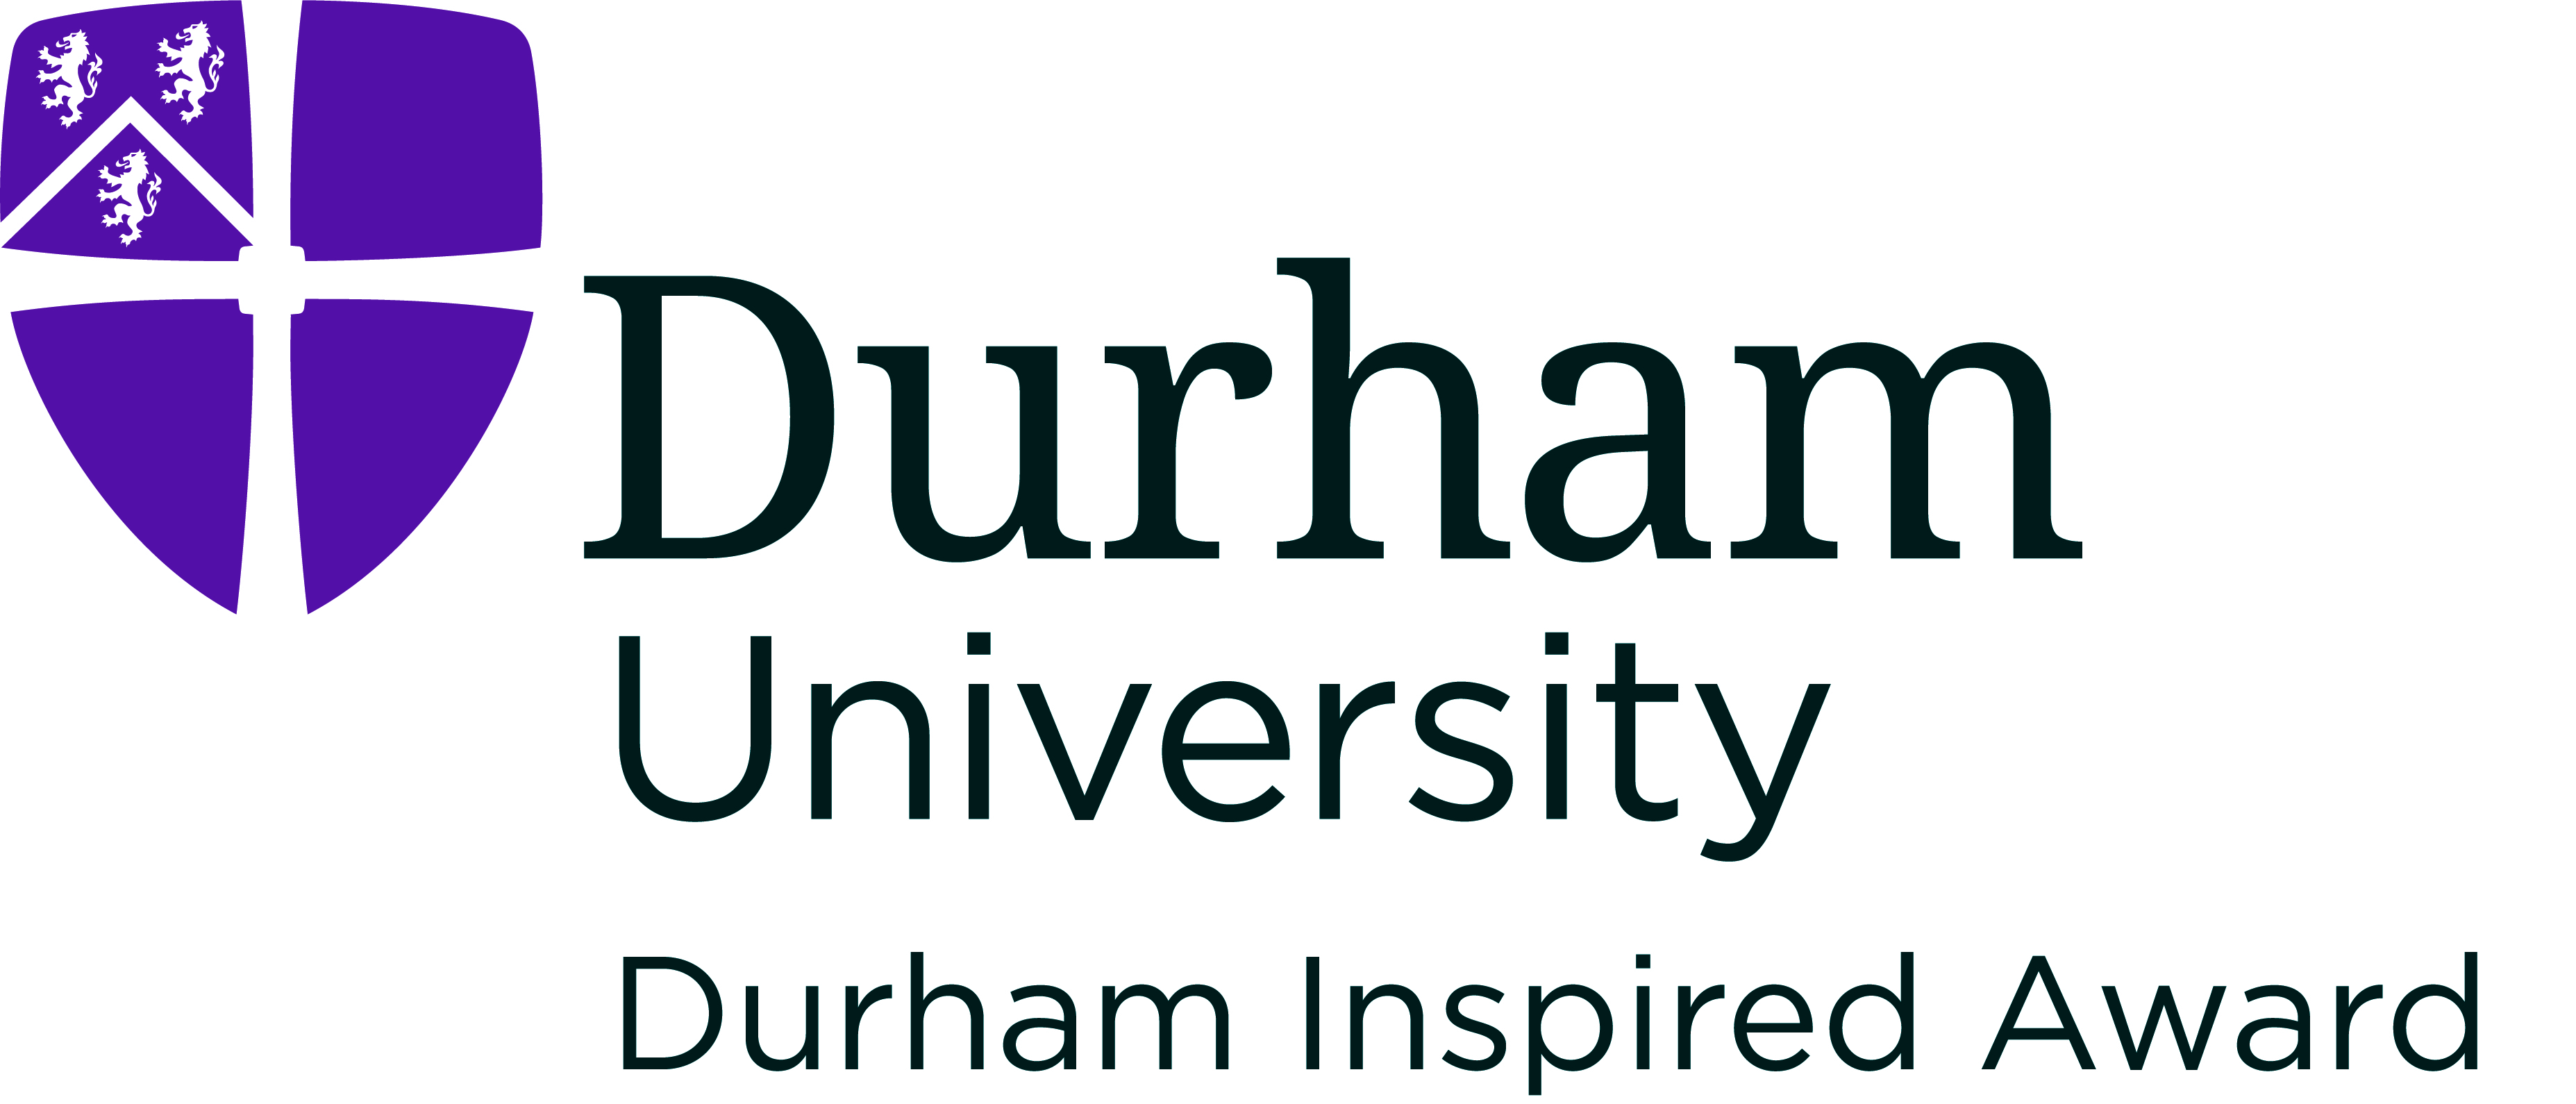 The Durham Inspired Award